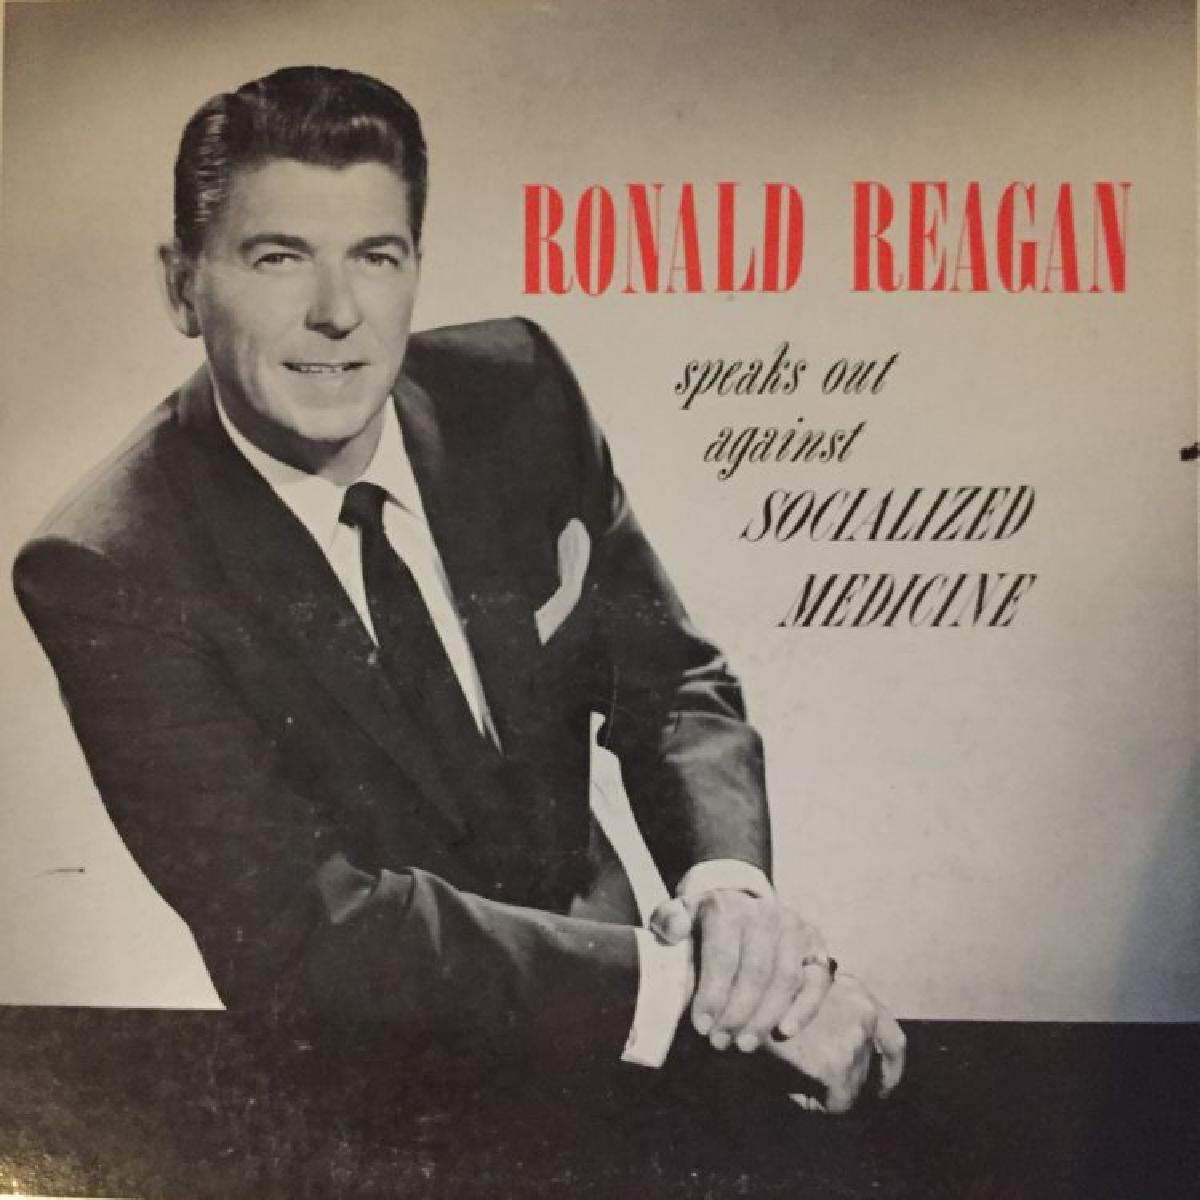 The cover of Ronald Reagan Speaks Out Against Socialized Medicine